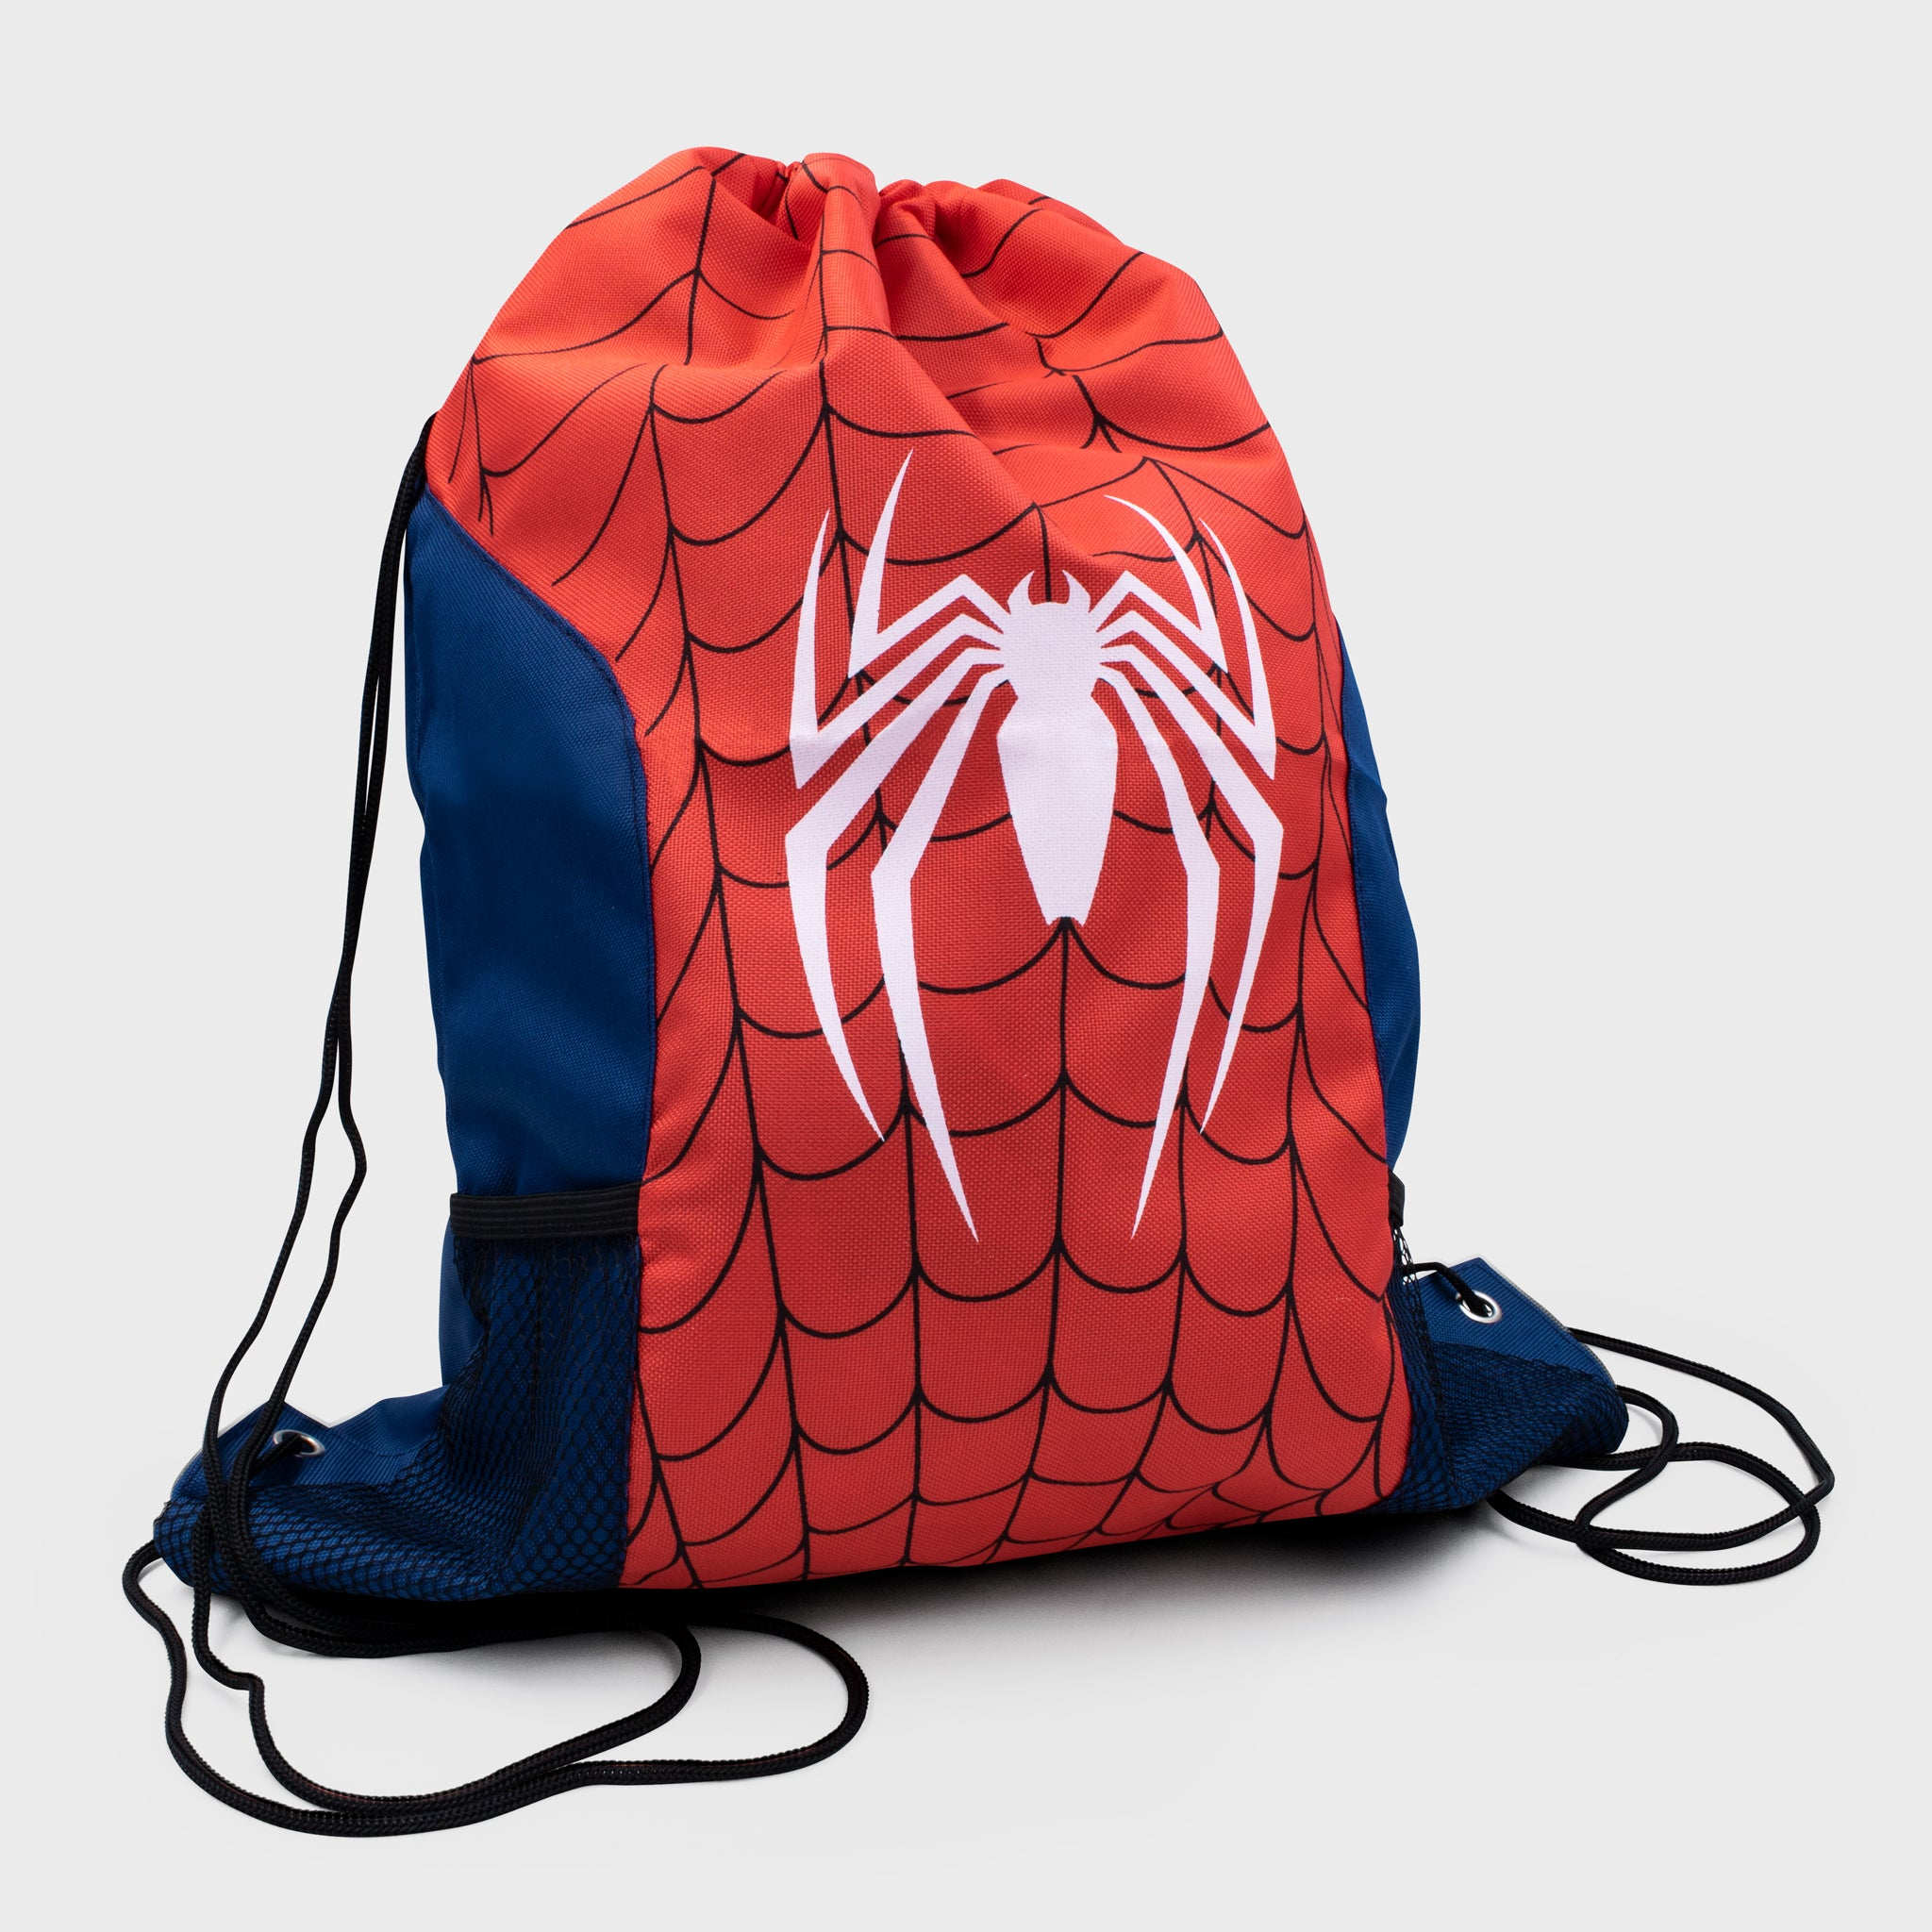 spider-man marvel ps4 superhero marvel entertainment spiderman peter parker exclusive walmart retail box collectibles accessories culturefly sling backpack bag